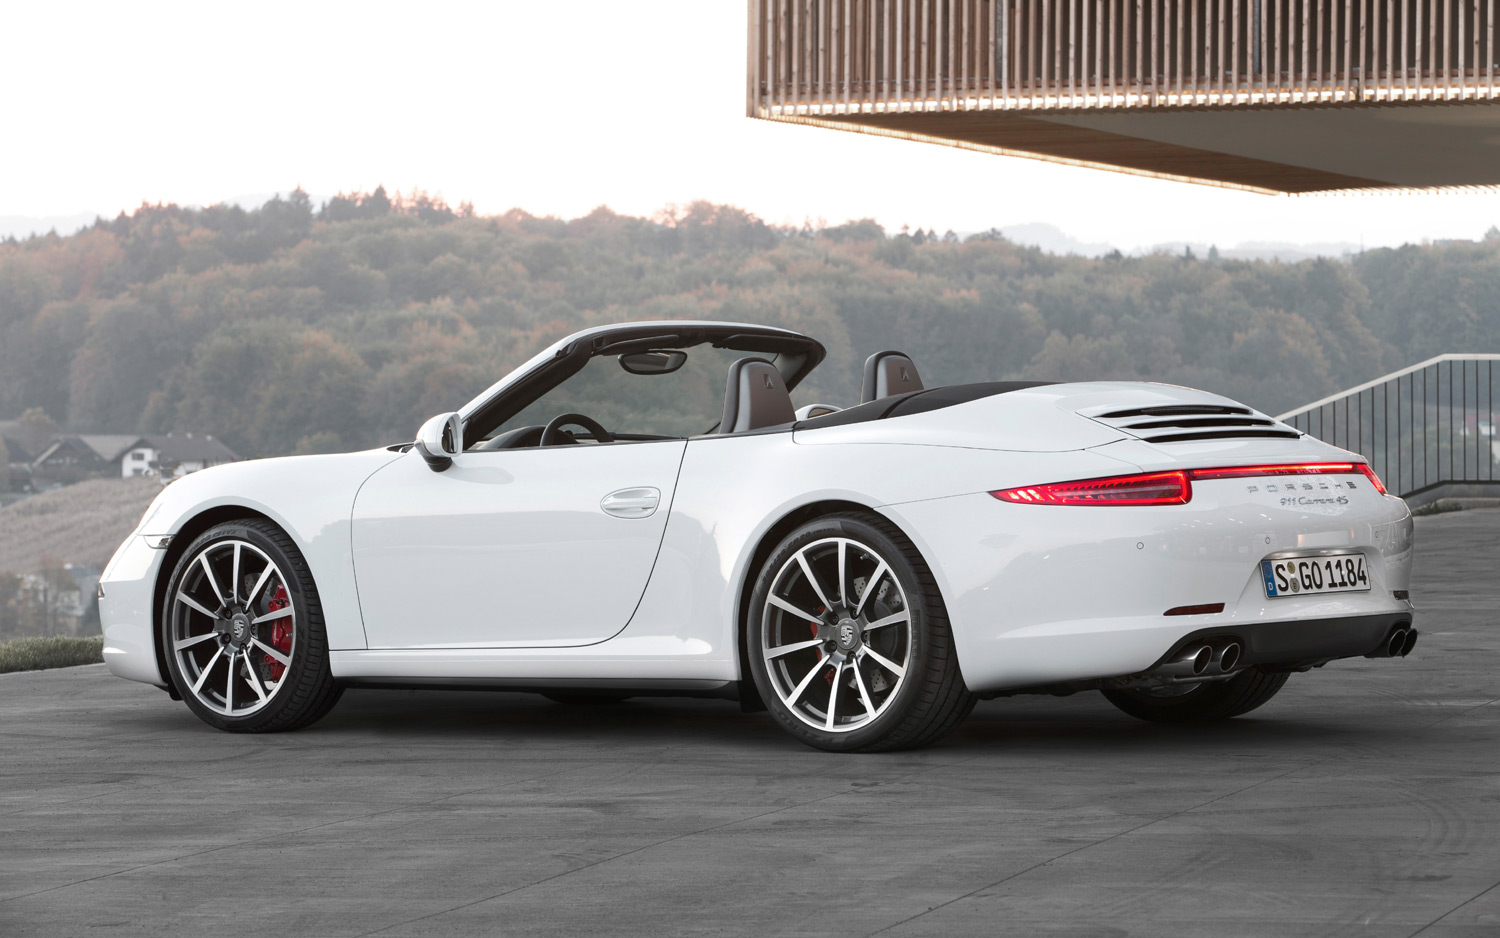 2013-Porsche-911-Carrera-4S-Cabriolet-white-rear-three-quarter